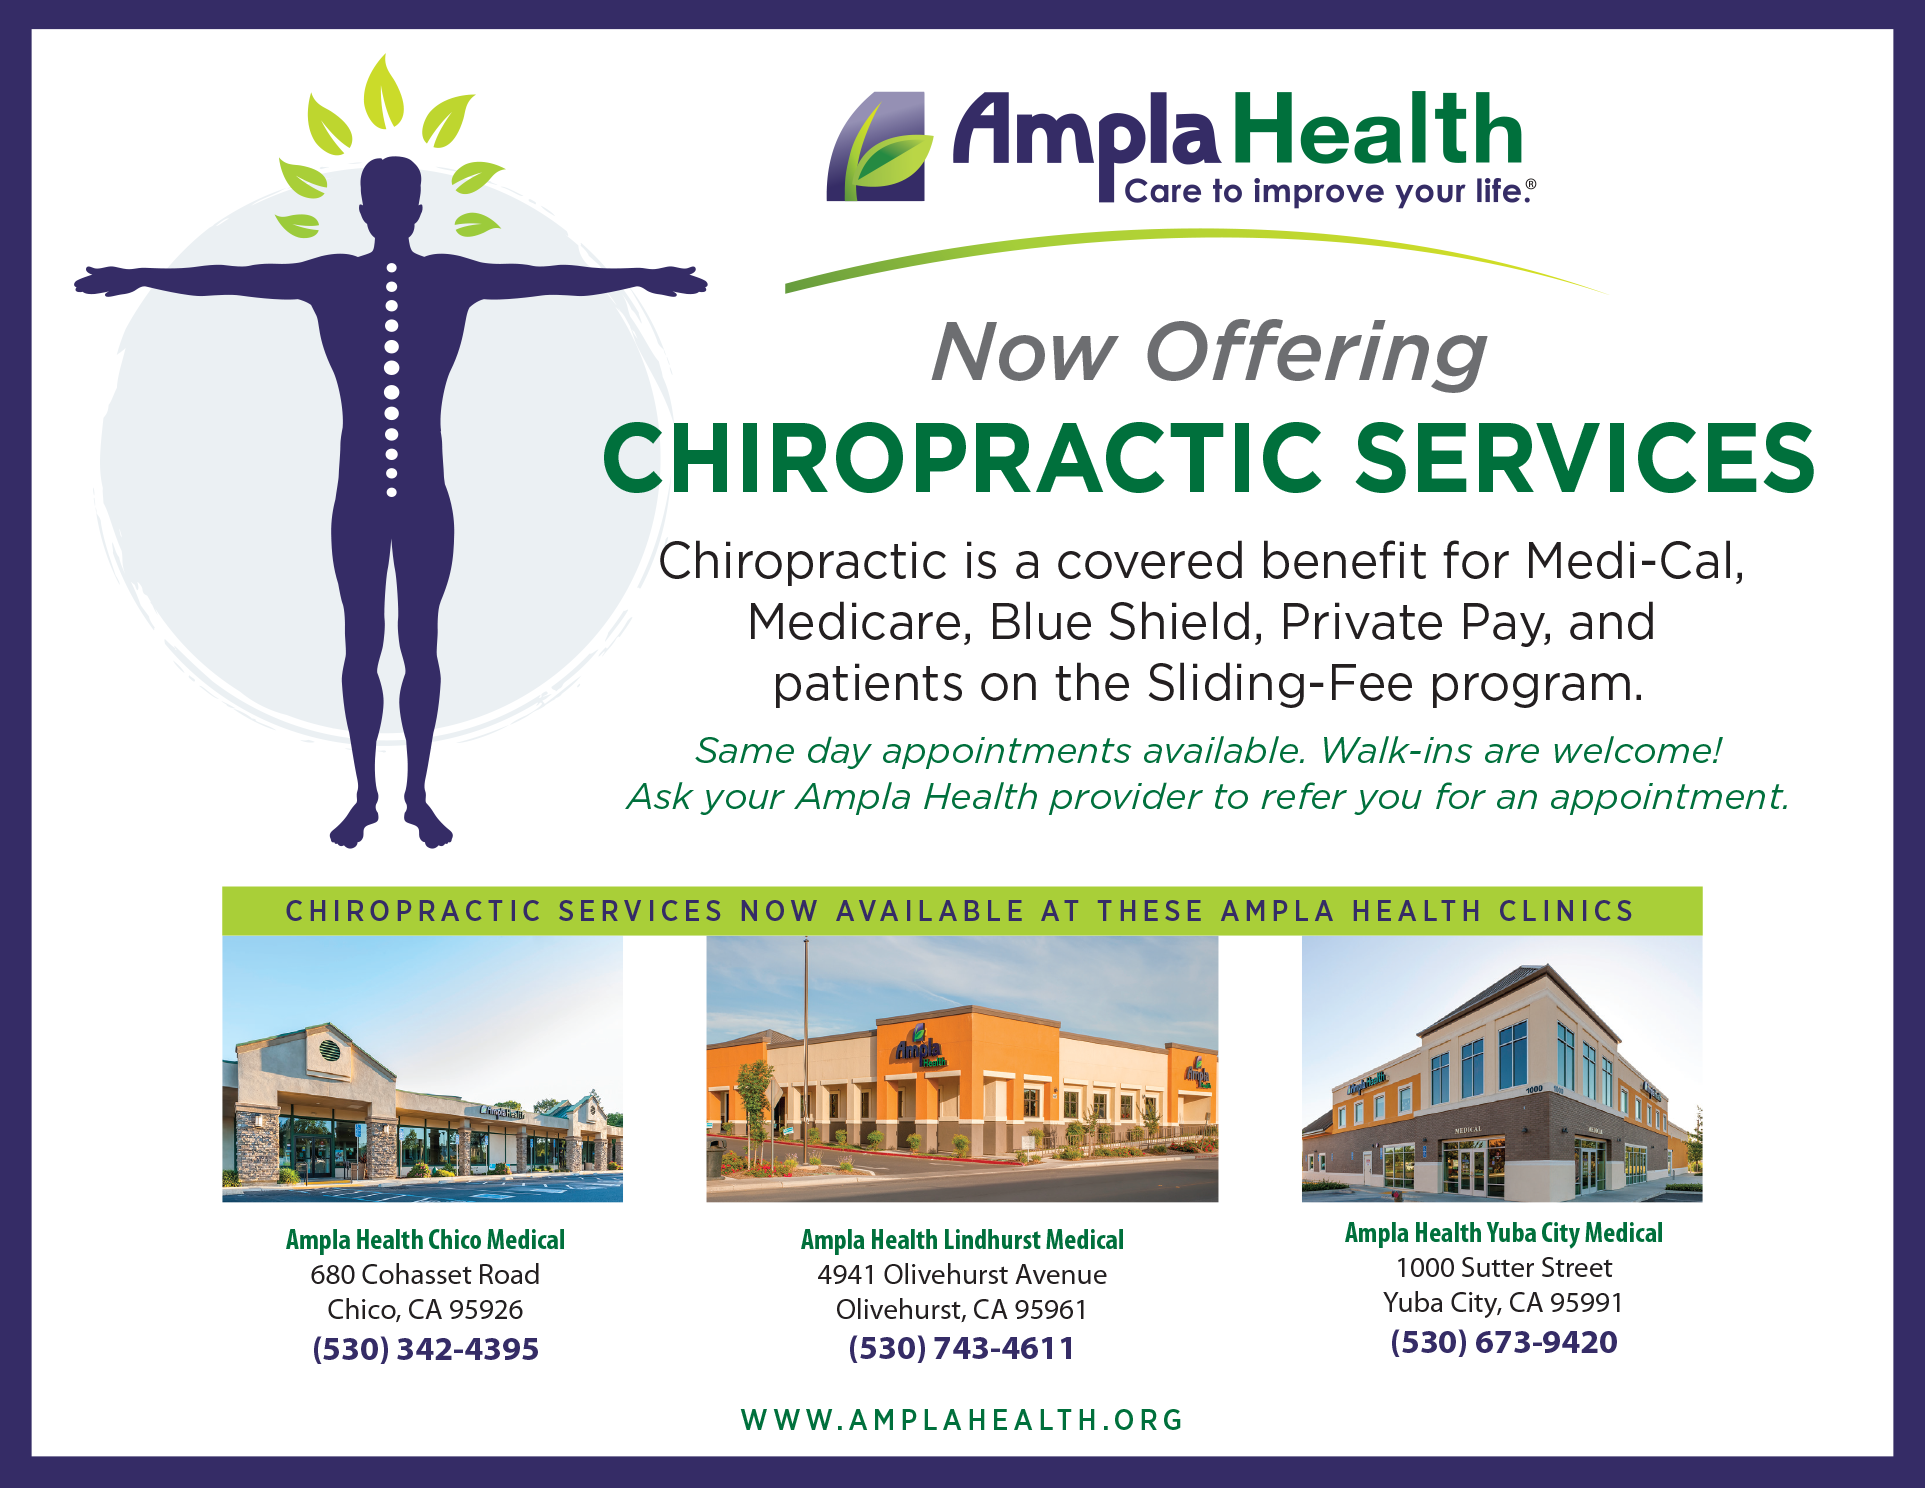 Chiropractic Services for Sliding Page on Website